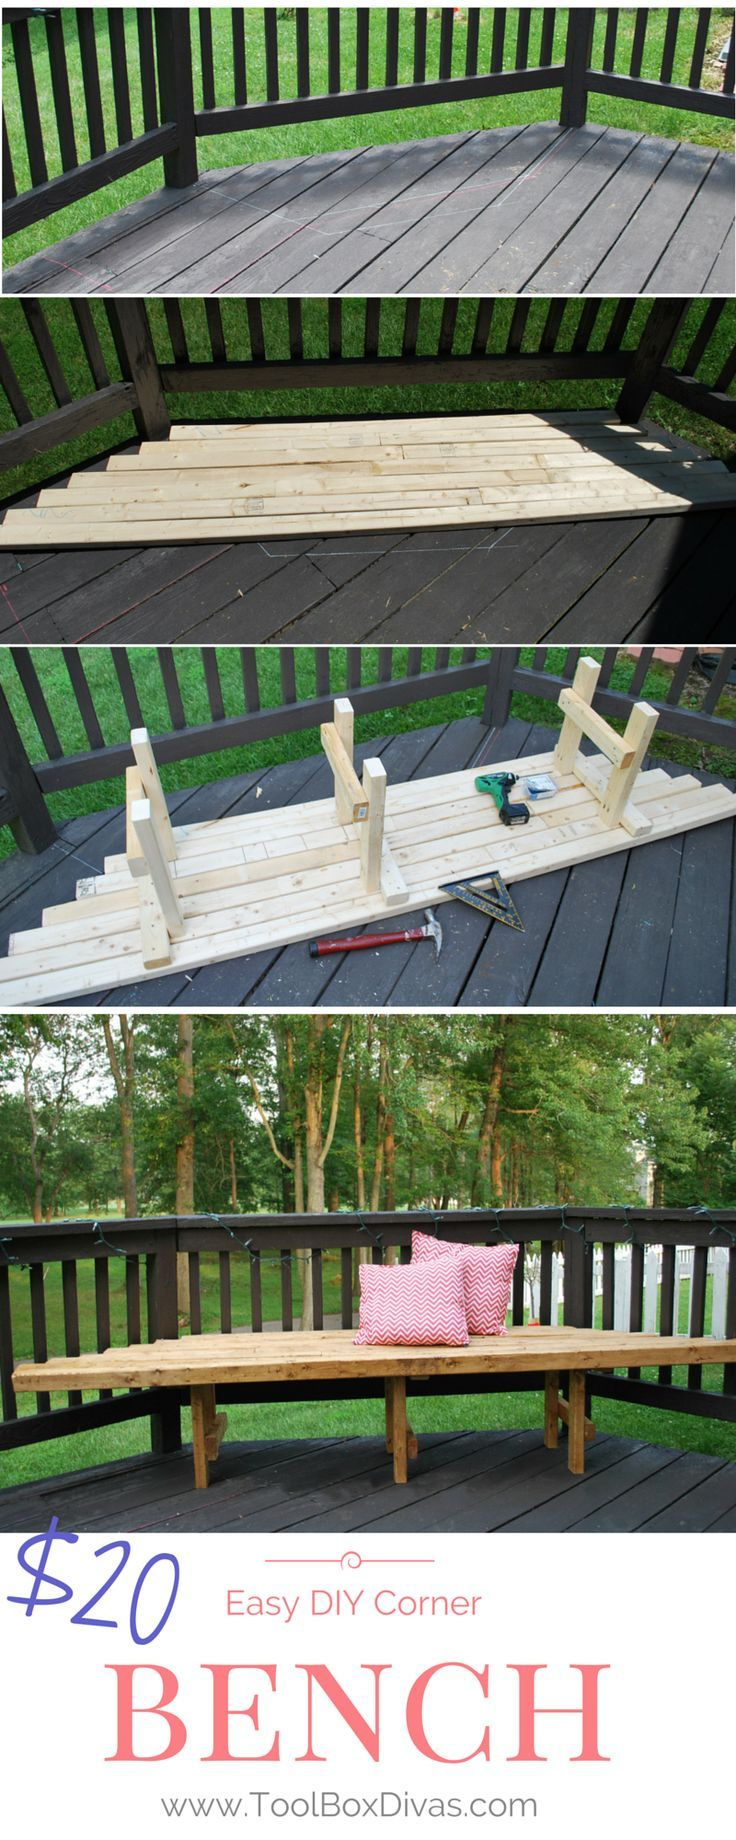 Solid roof pergola plans in addition park bench picnic table moreover - Easy Diy Corner Bench